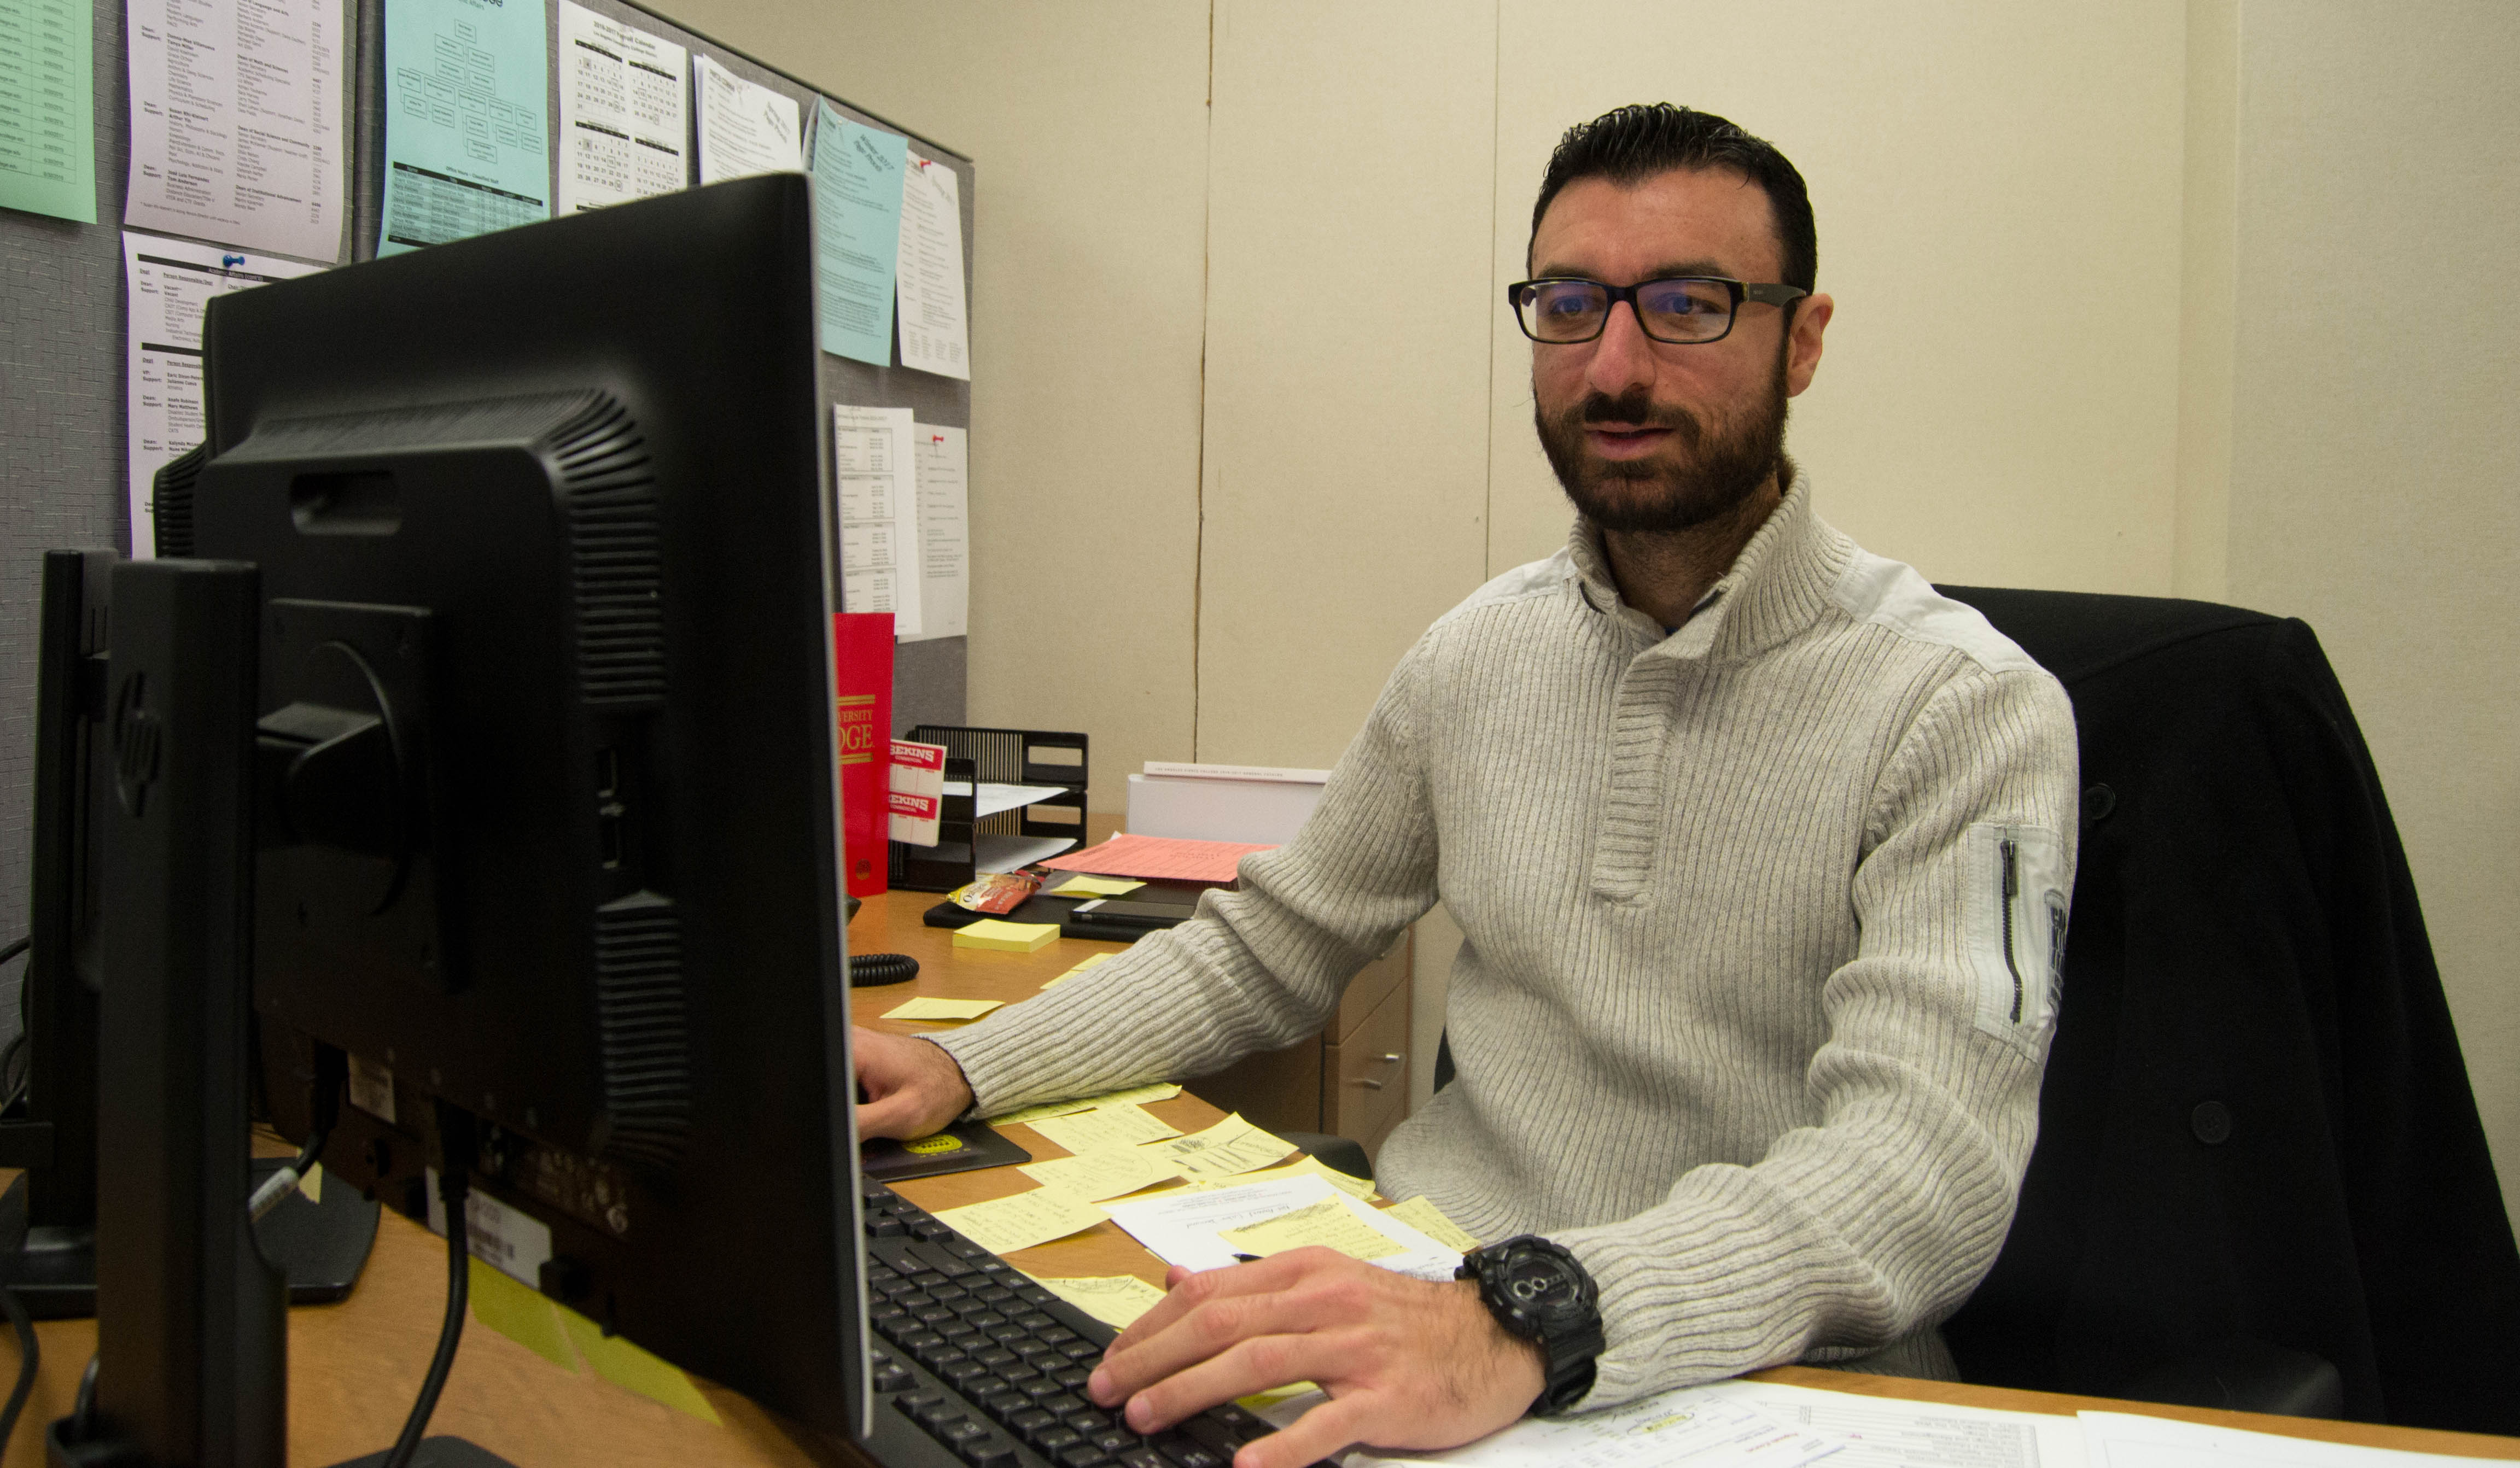 Shant Varozian working in his office at VGLE 8213 in Pierce College in Woodland Hills, Calif.